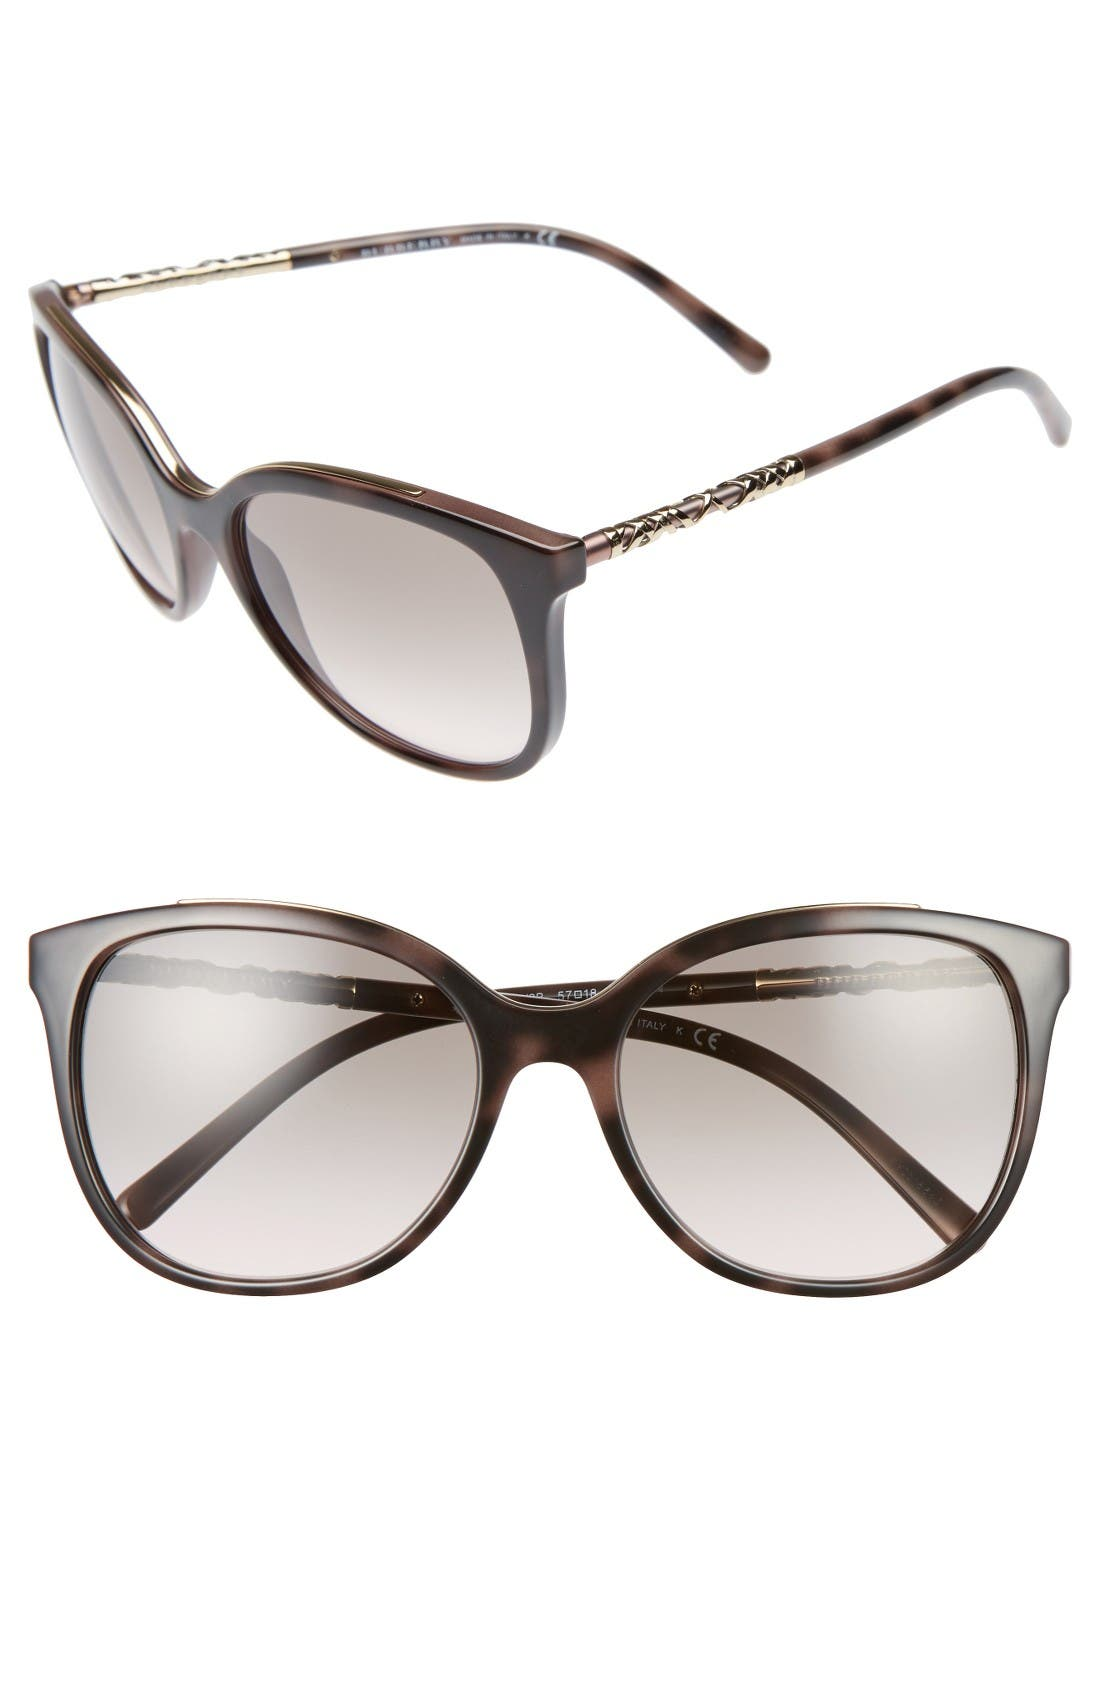 Main Image - Burberry 57mm Sunglasses